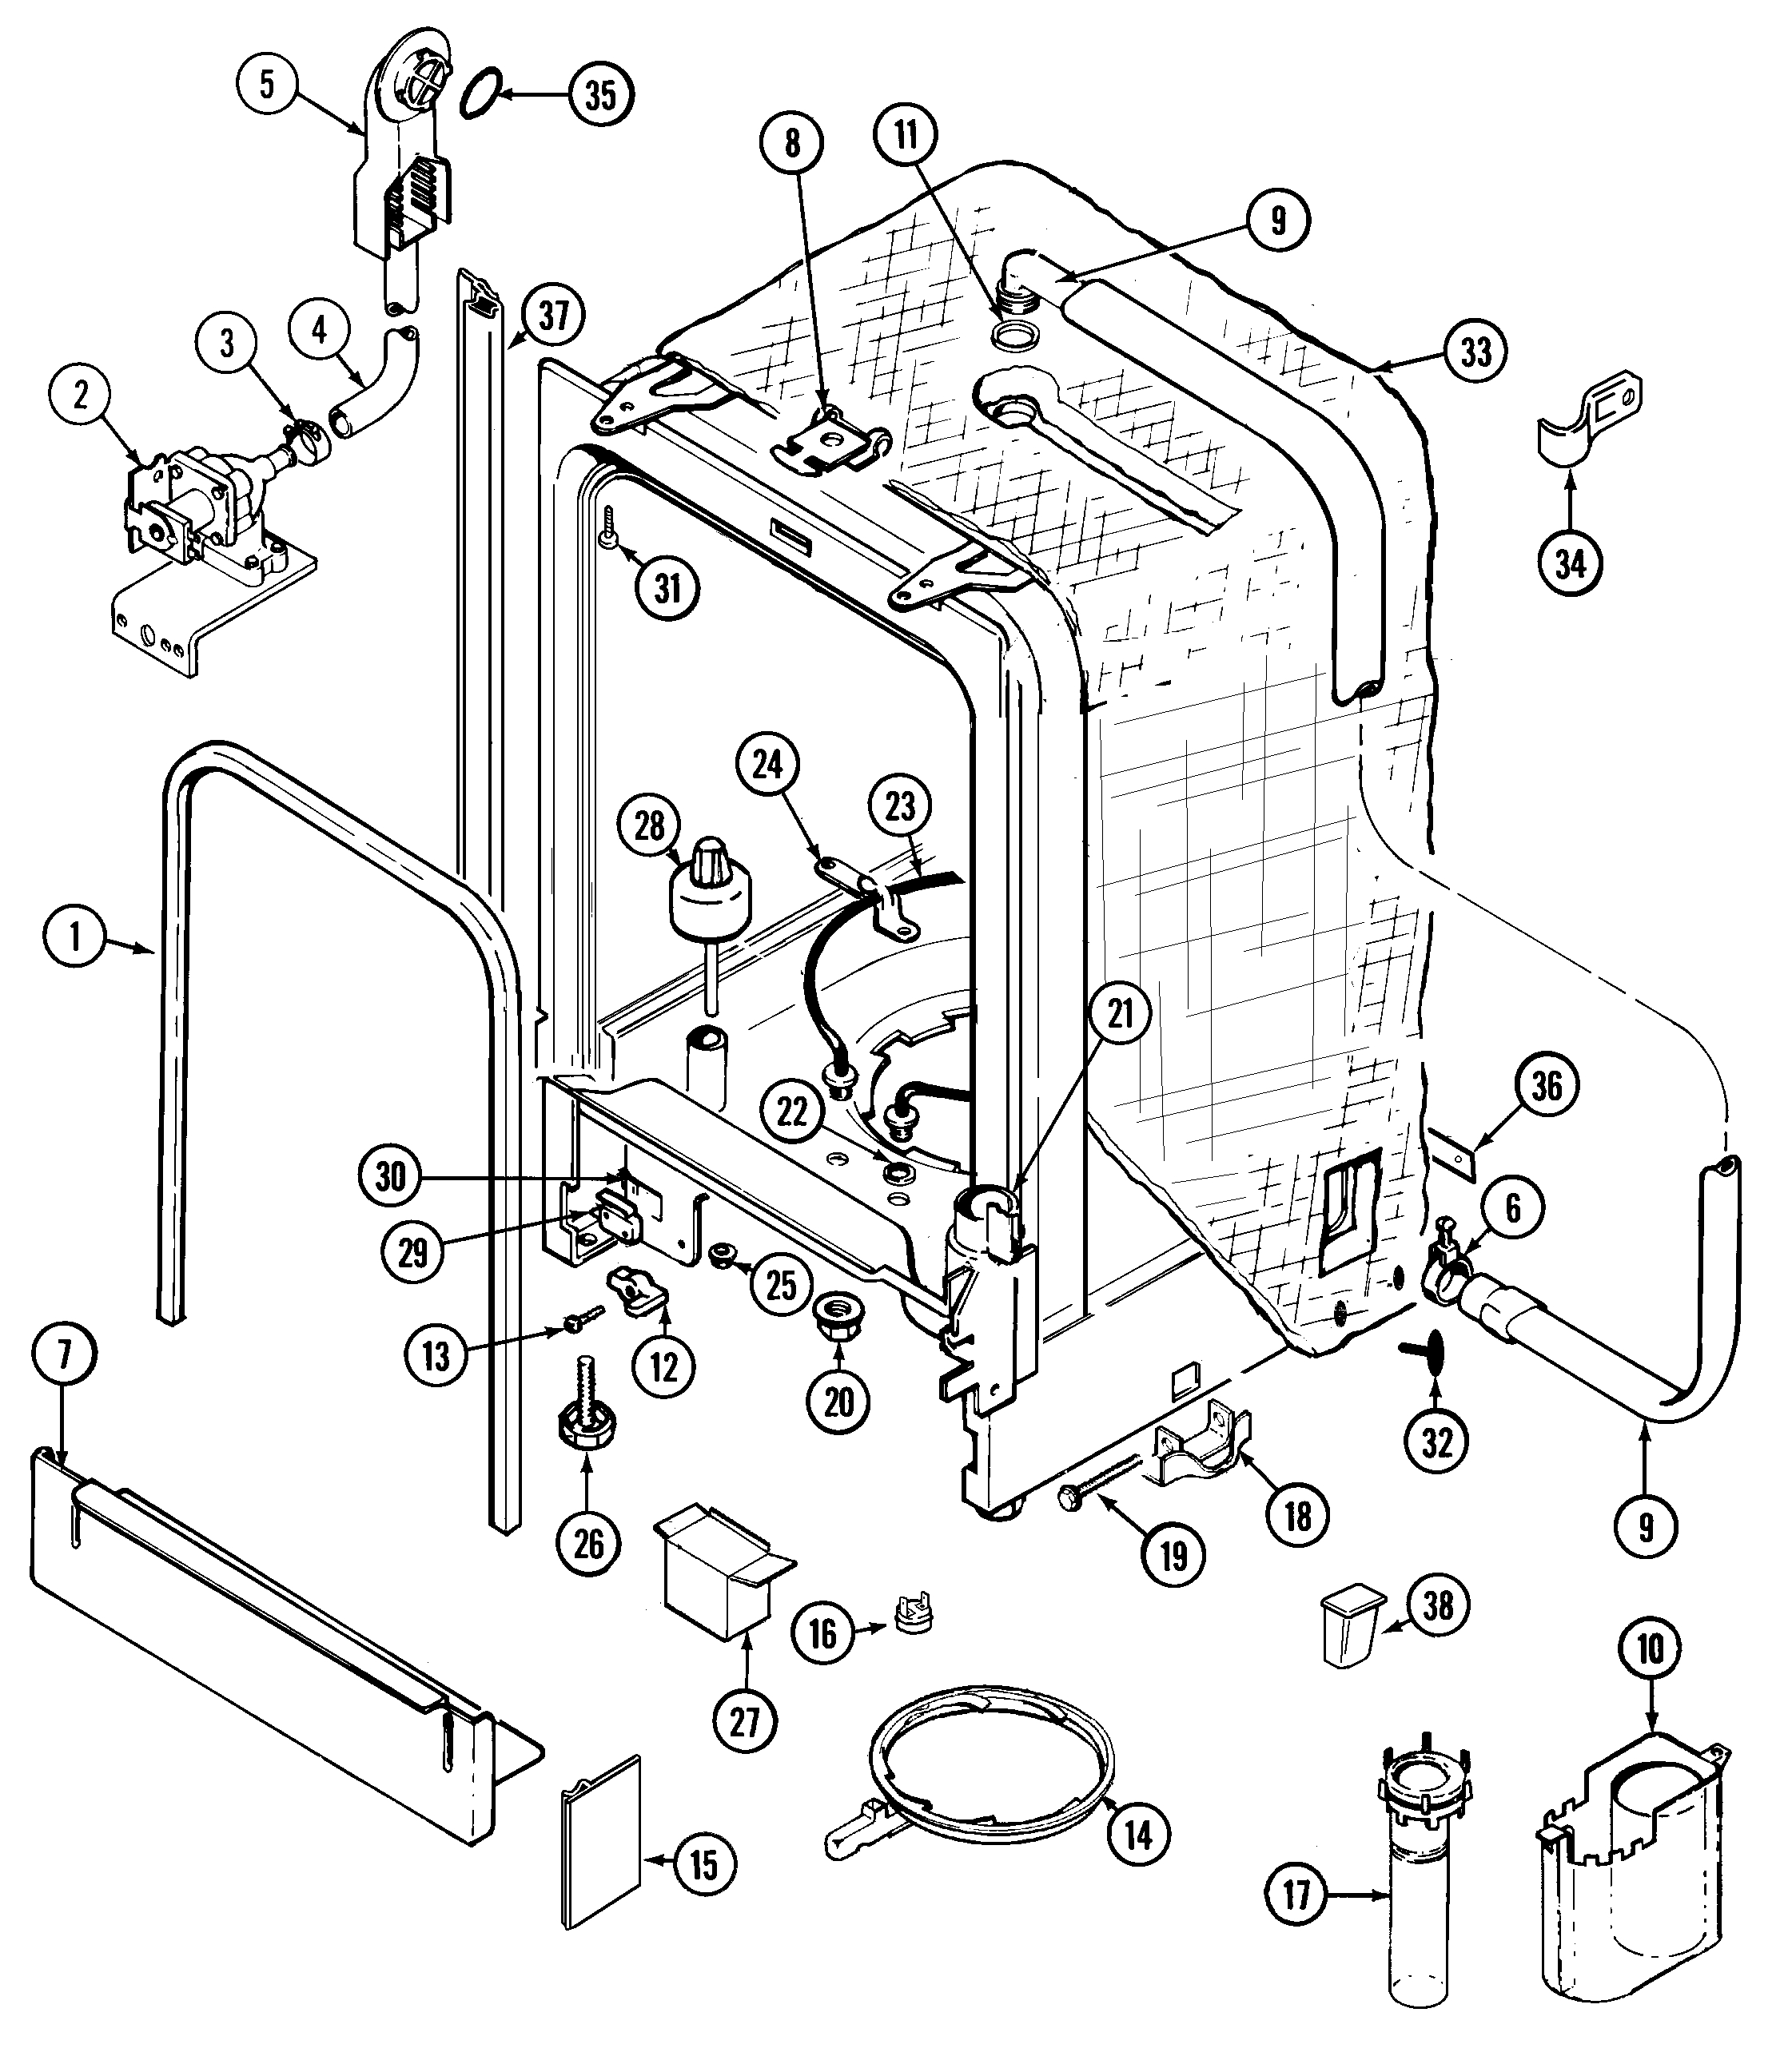 Whirlpool Dishwasher Wiring Diagram Download